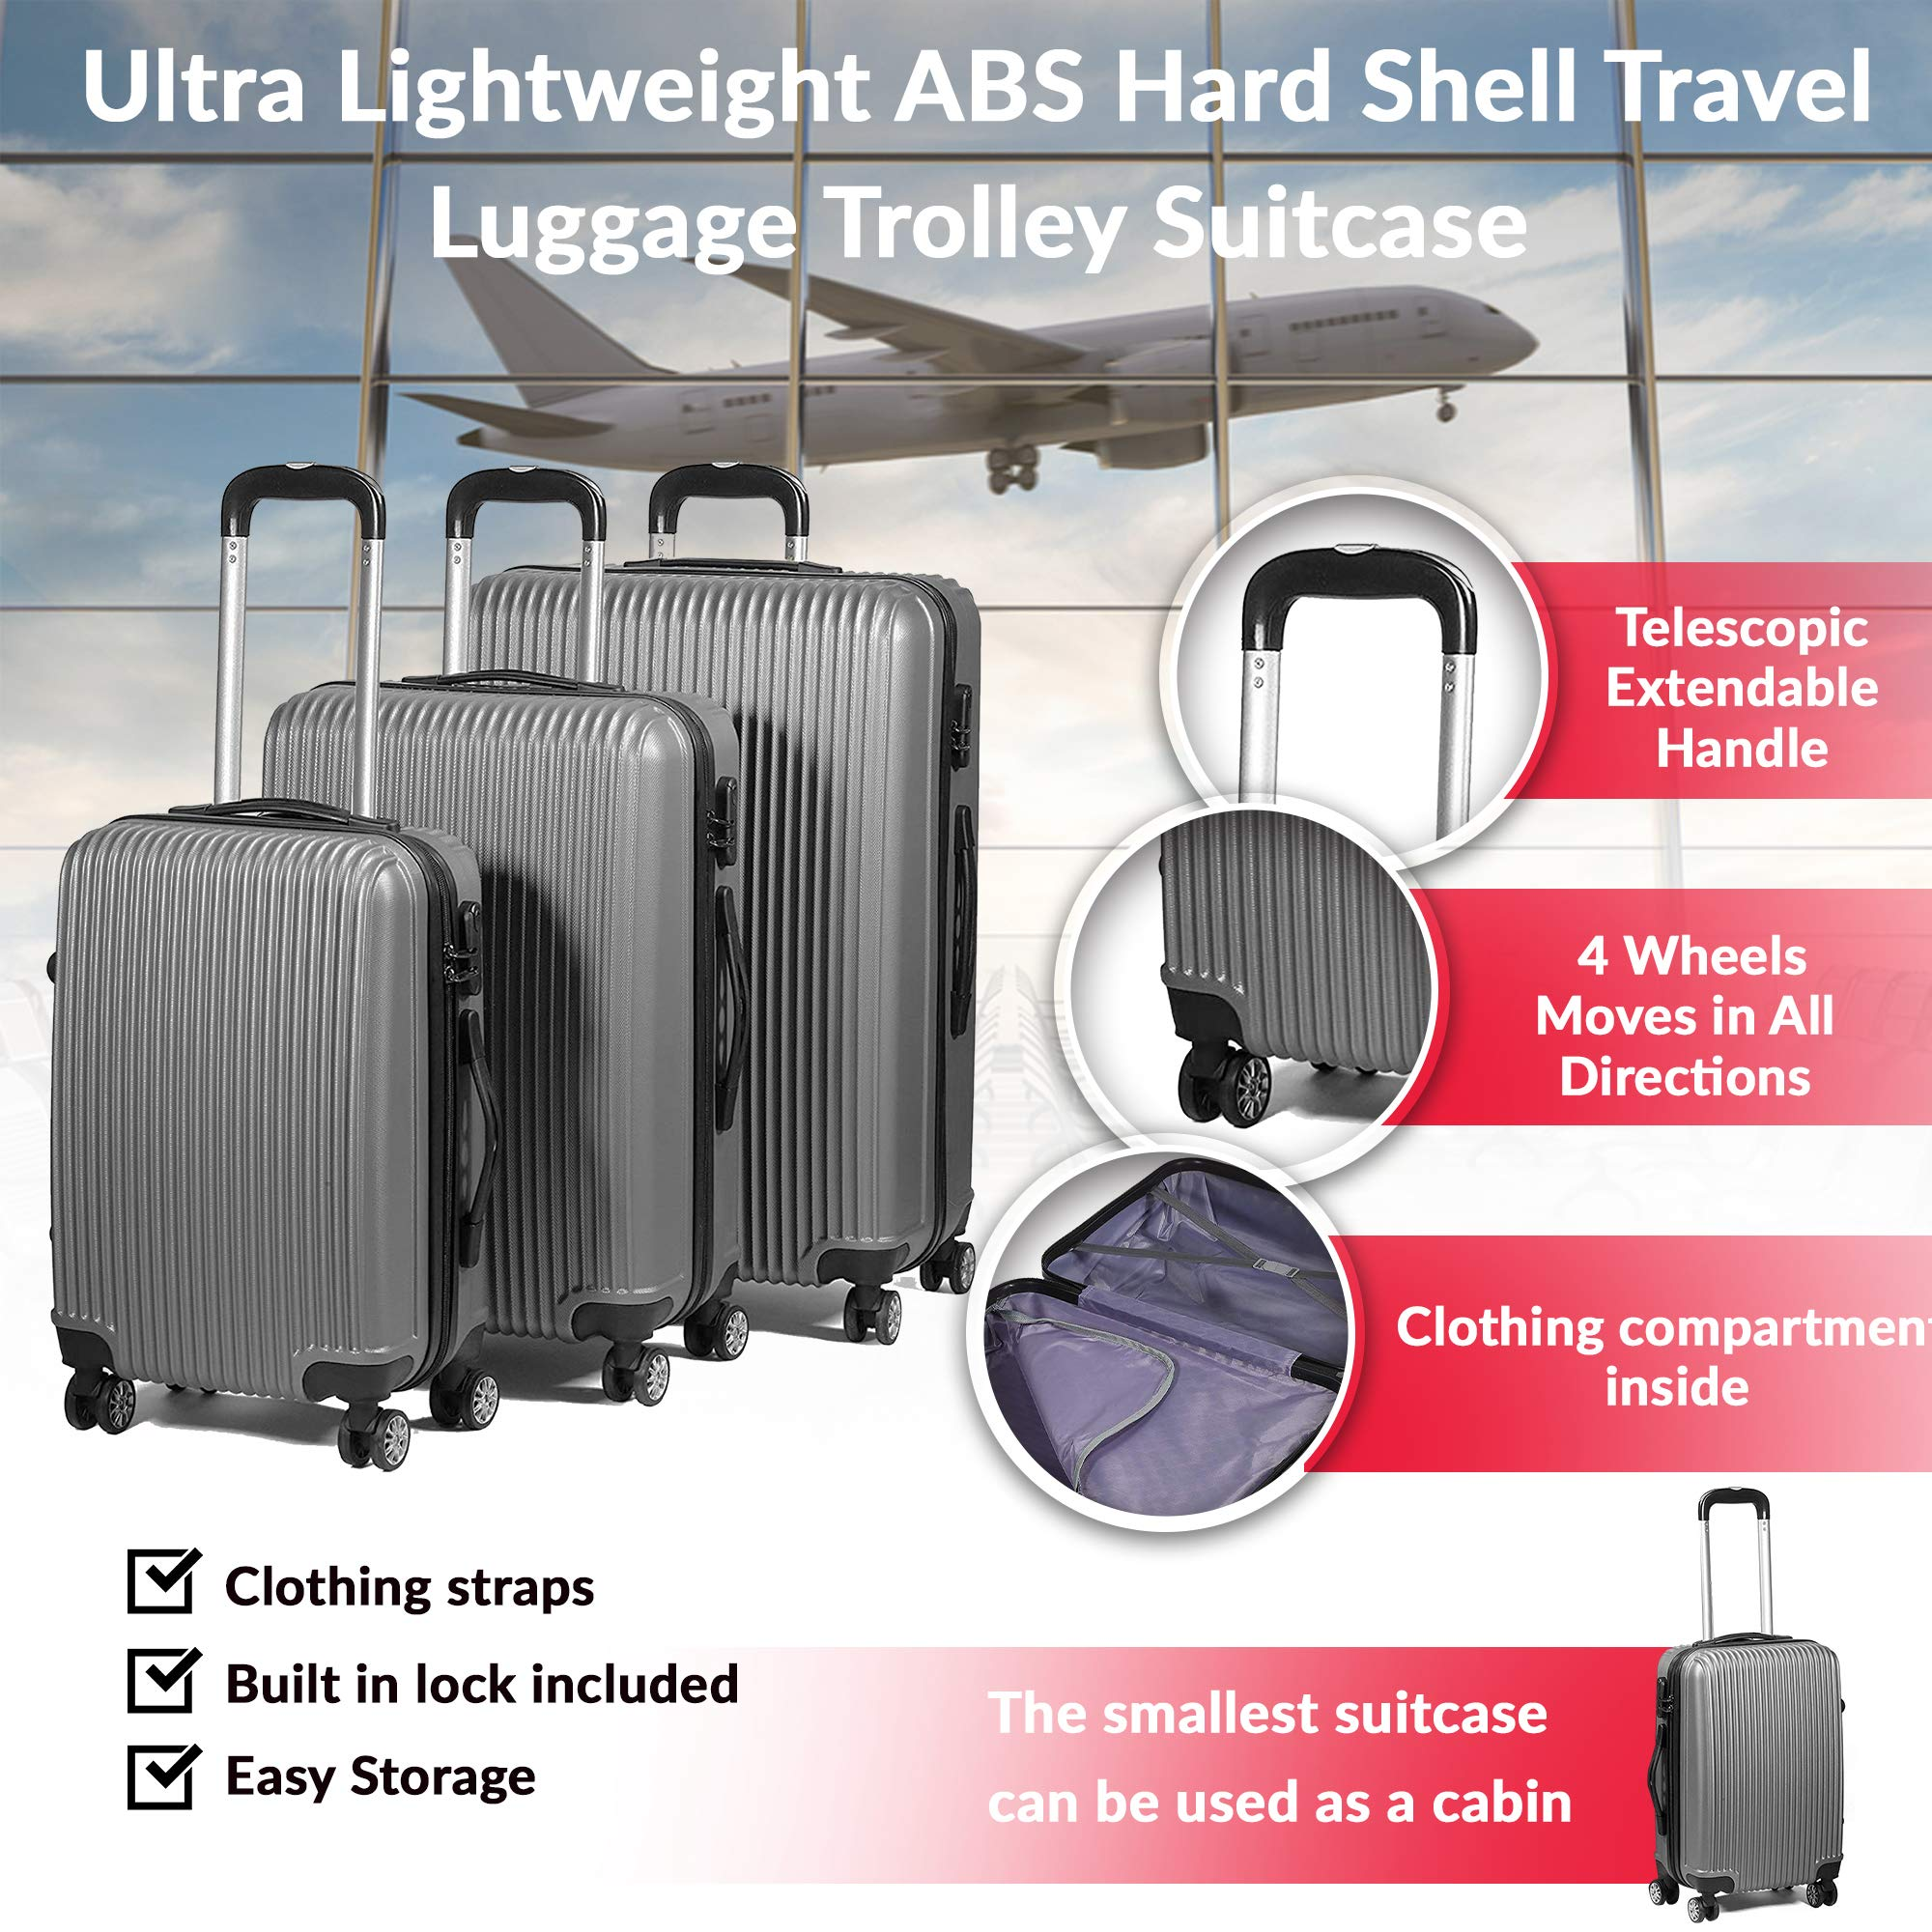 761105c8676a 3 Piece Ultra Lightweight ABS Hard Shell Travel Luggage Trolley Suitcase  Set - 4 Wheels/Moves in All Directions - Cabin Size Included - Telescopic  ...